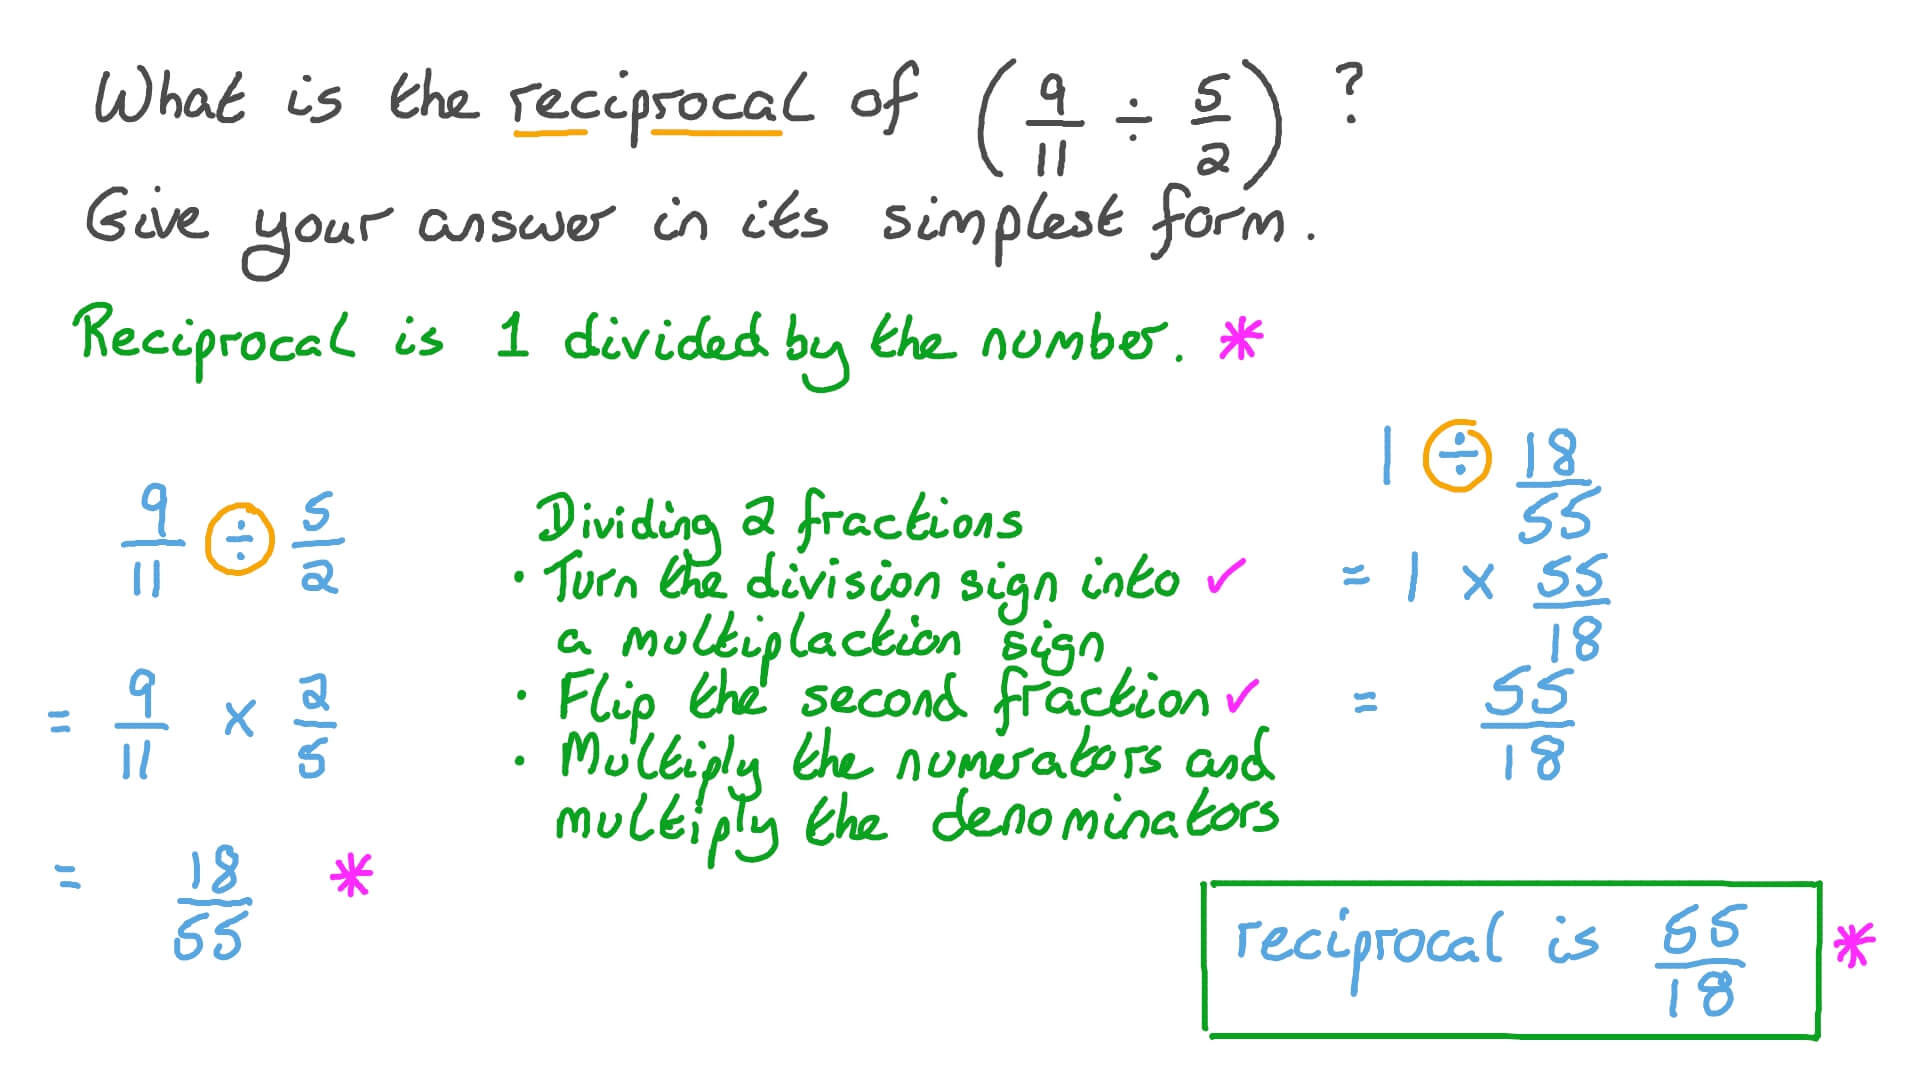 simplest form dividing fractions  Finding in the Simplest Form the Reciprocal of the Result of  Multiplying/Dividing Two Fractions